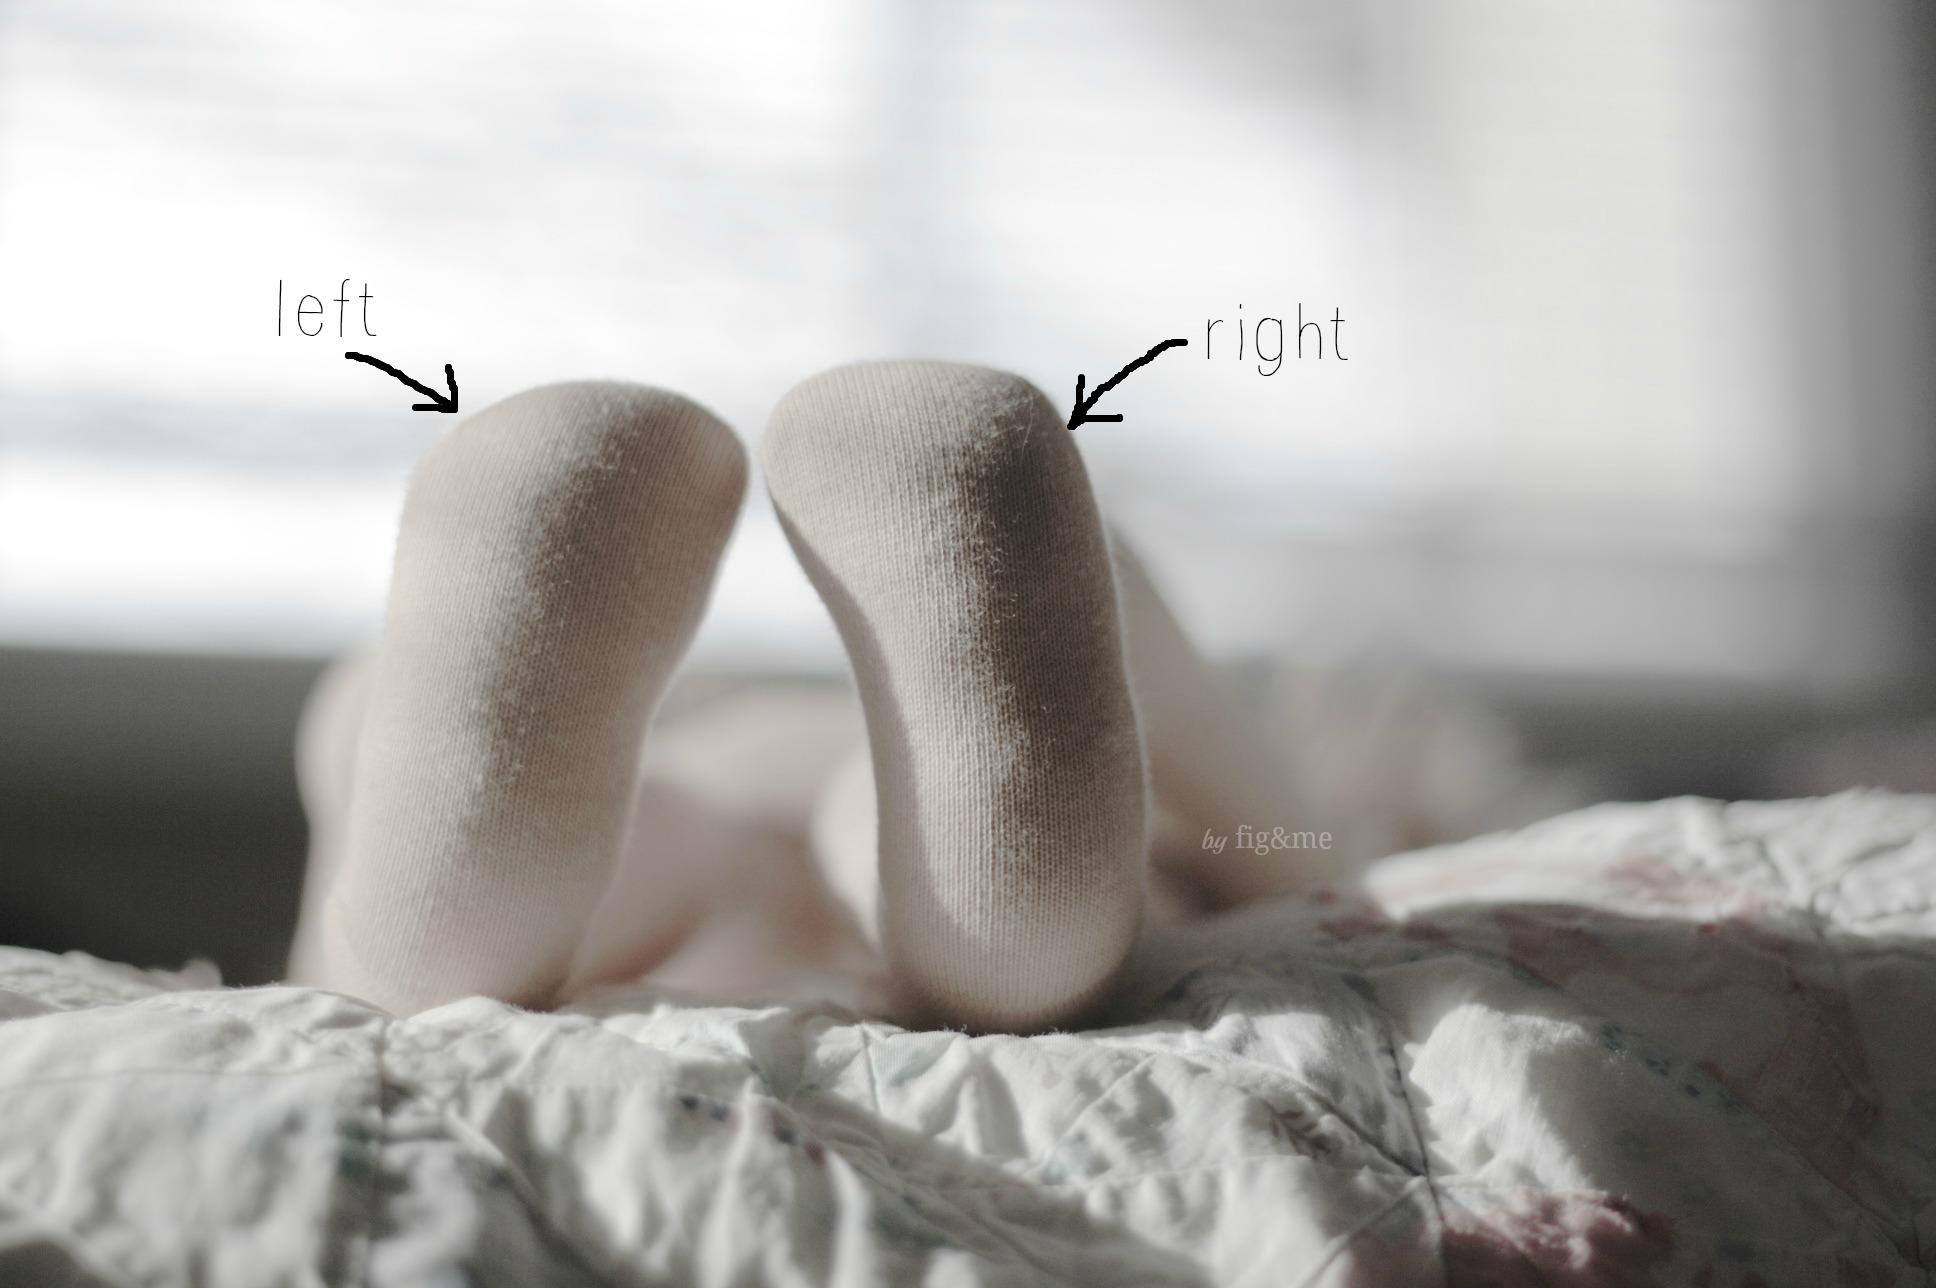 Left and right feet, by Fig&me